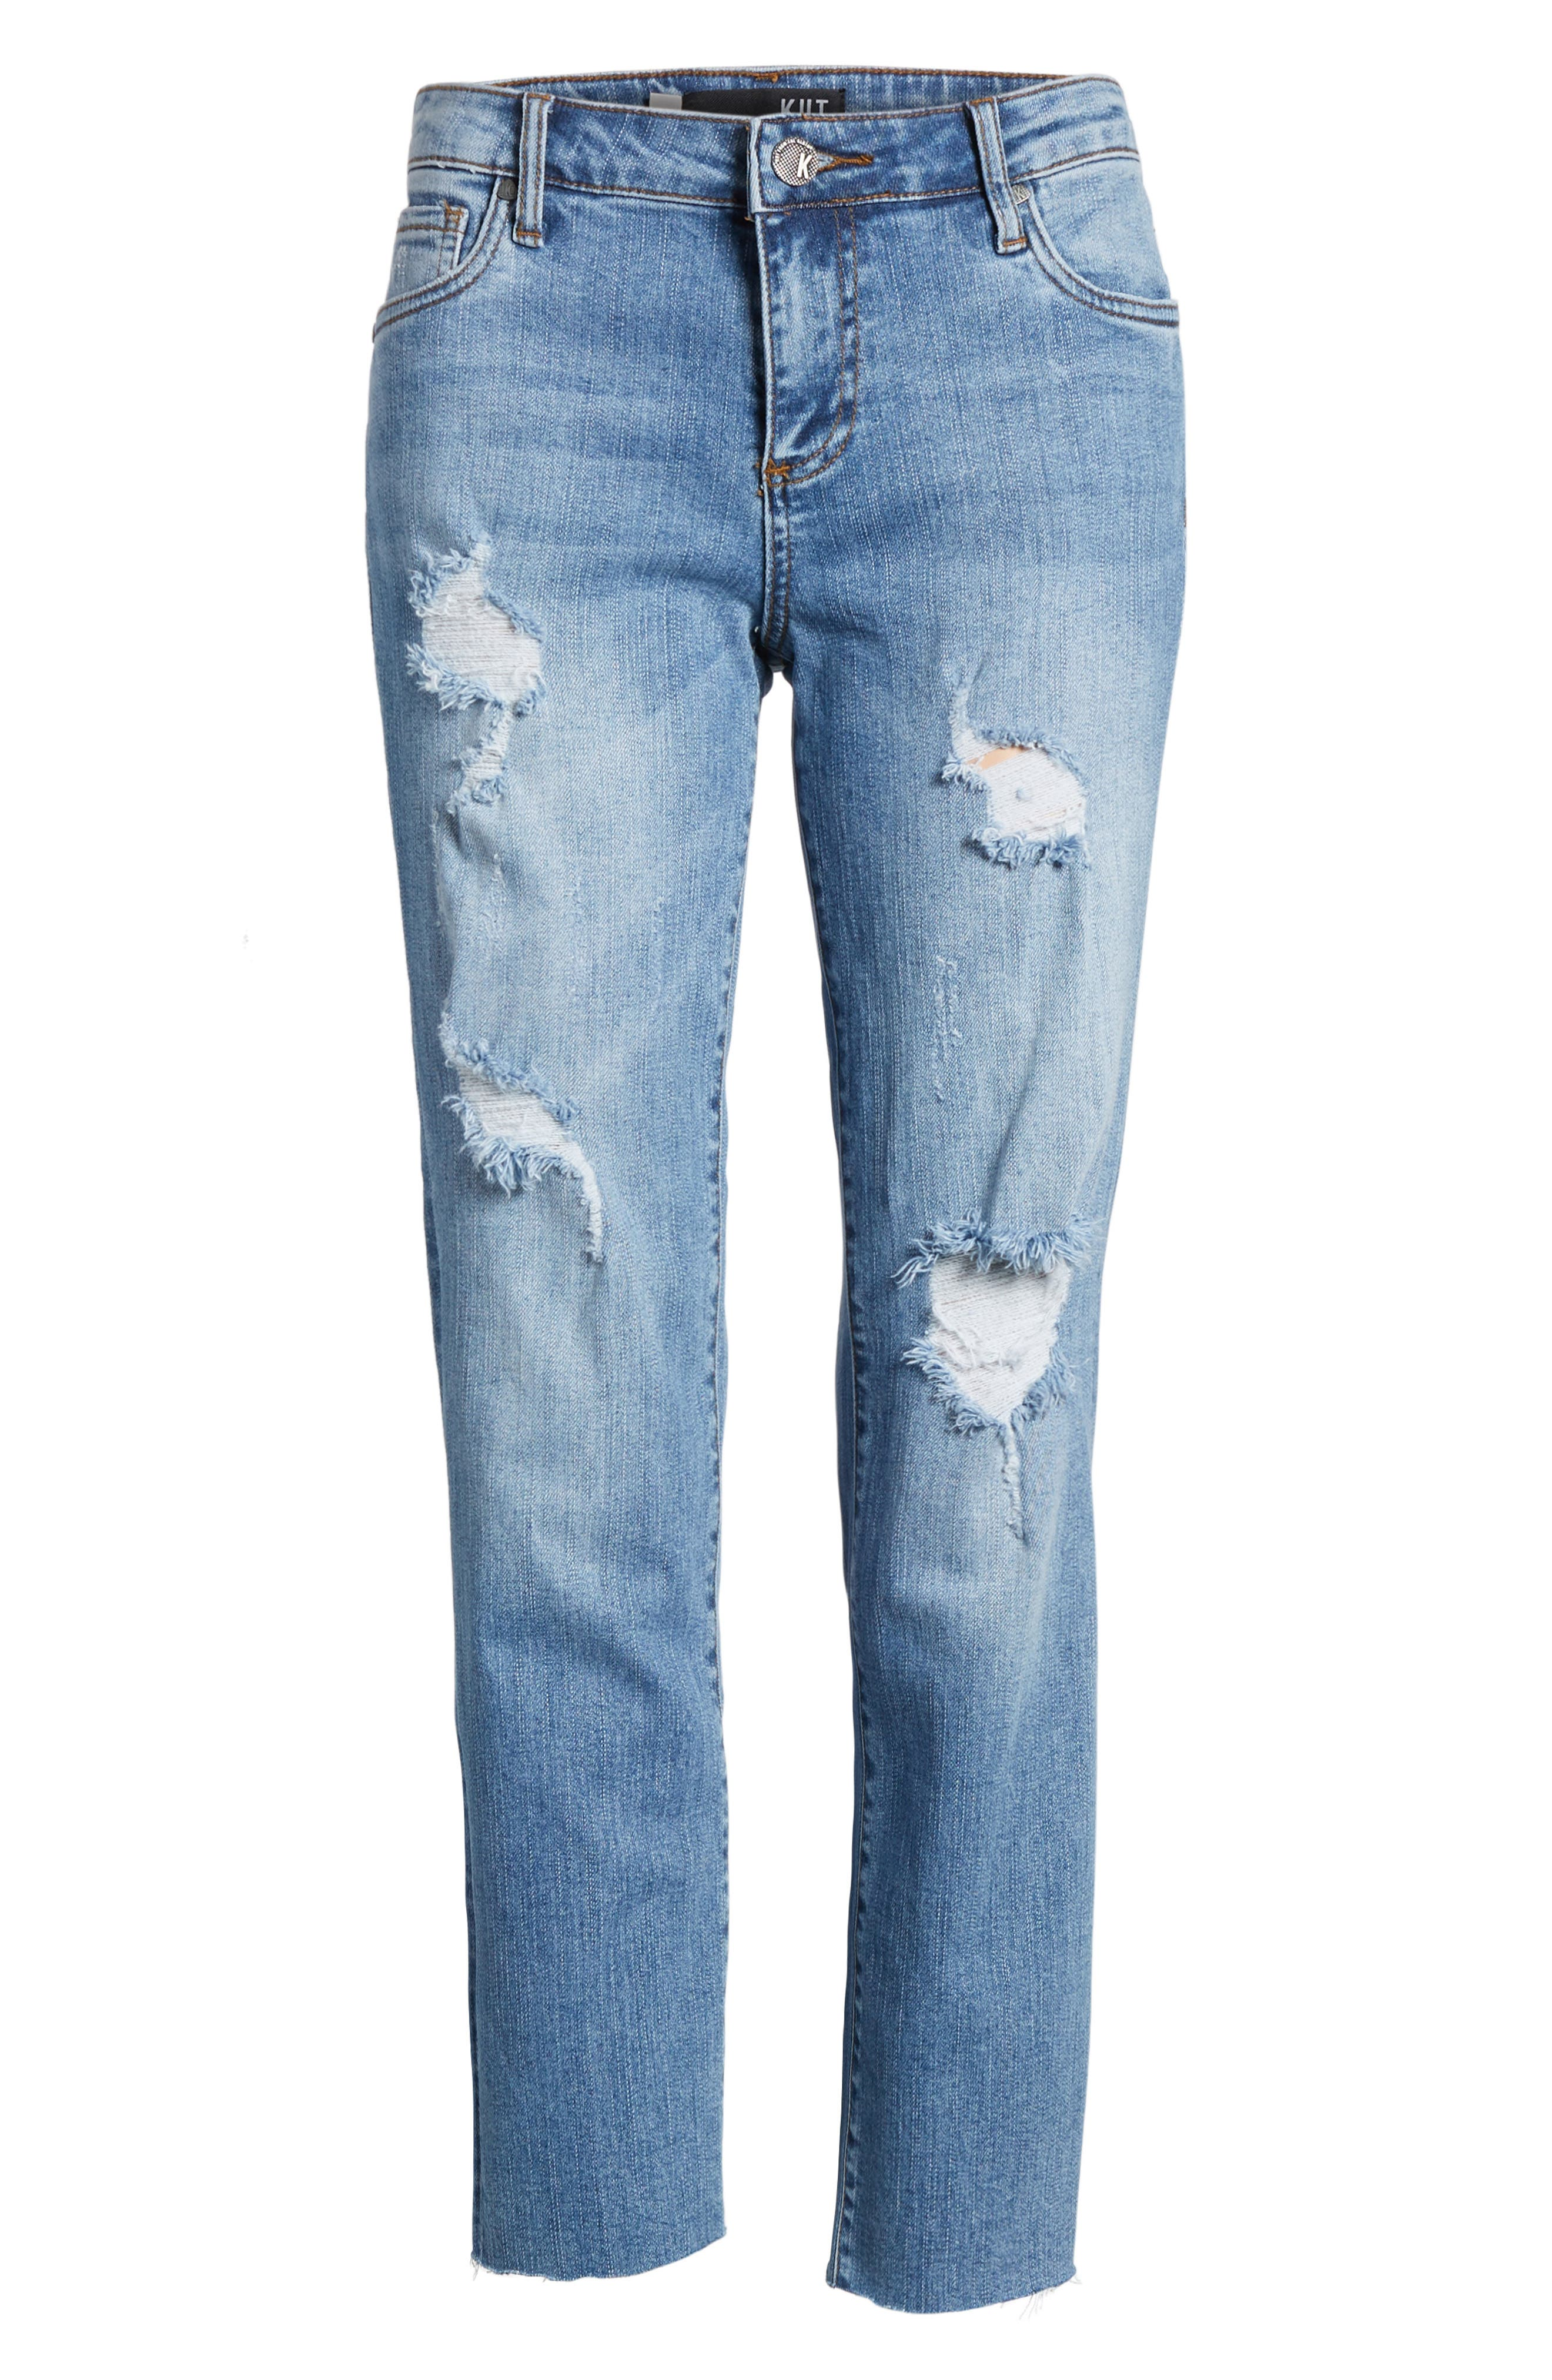 Reese Ripped Raw Edge Ankle Jeans,                             Alternate thumbnail 6, color,                             Assess